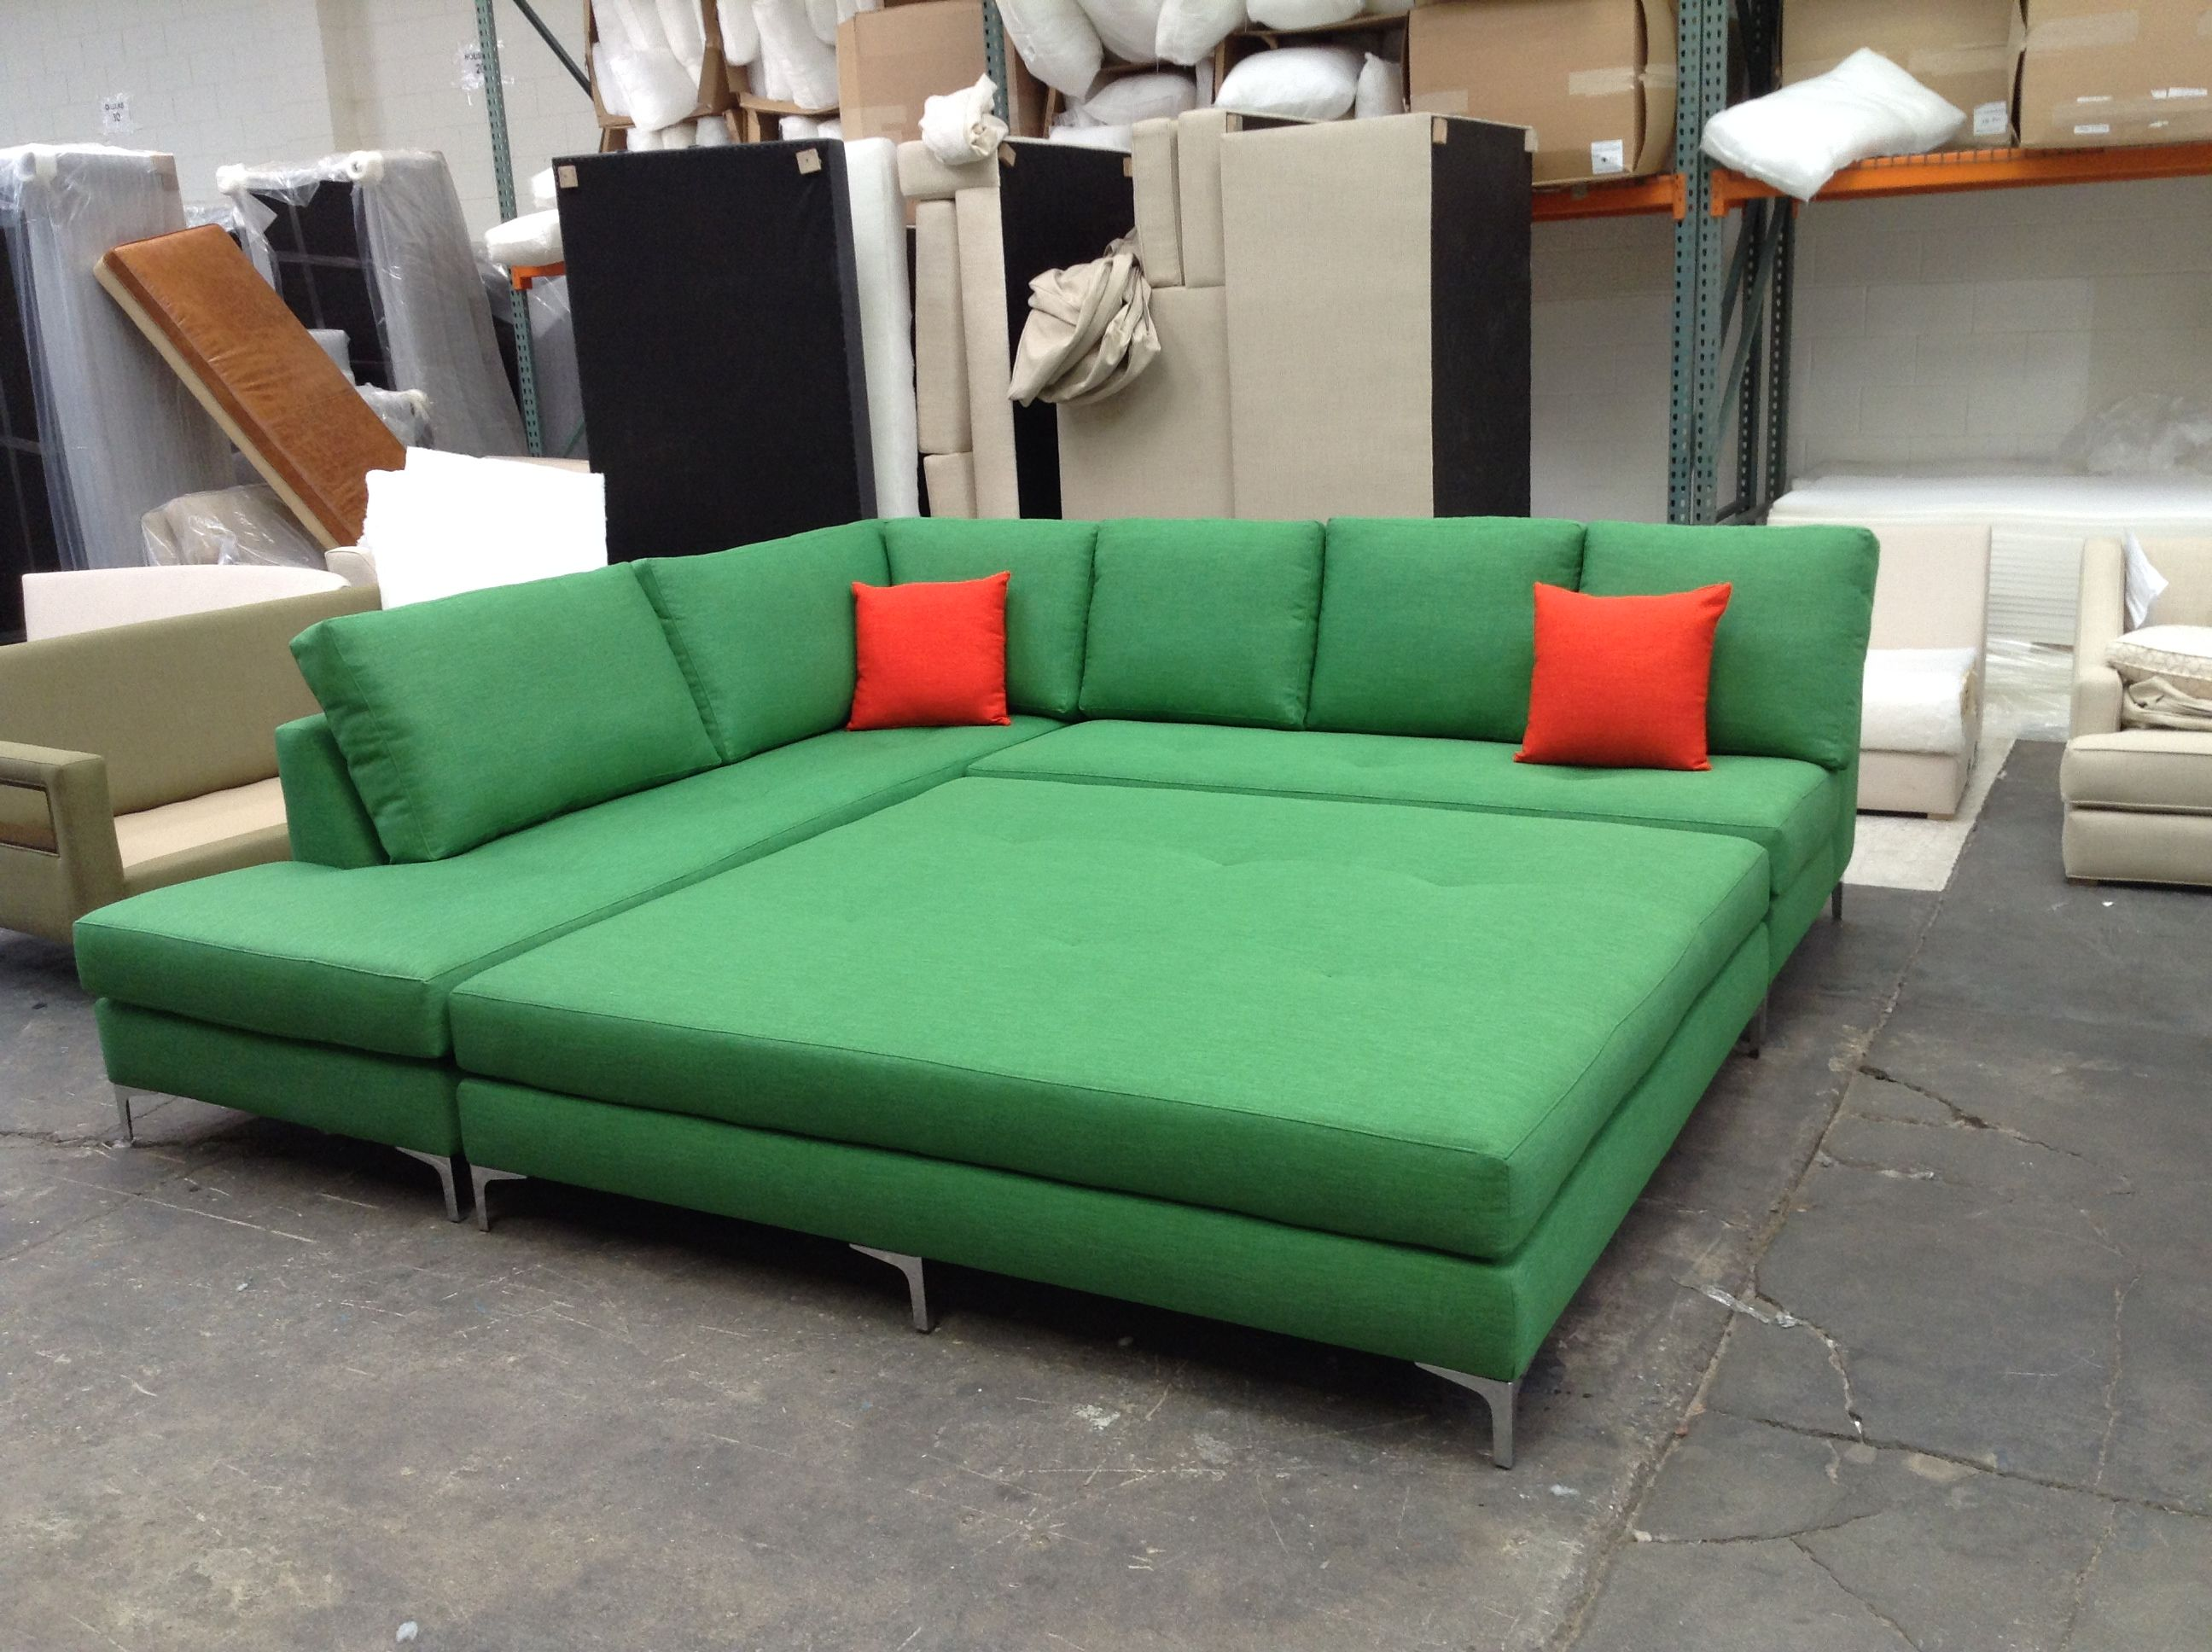 Flexsteel Sofa Definitely Mega Couch buildasofa Now to find our perfect fabric